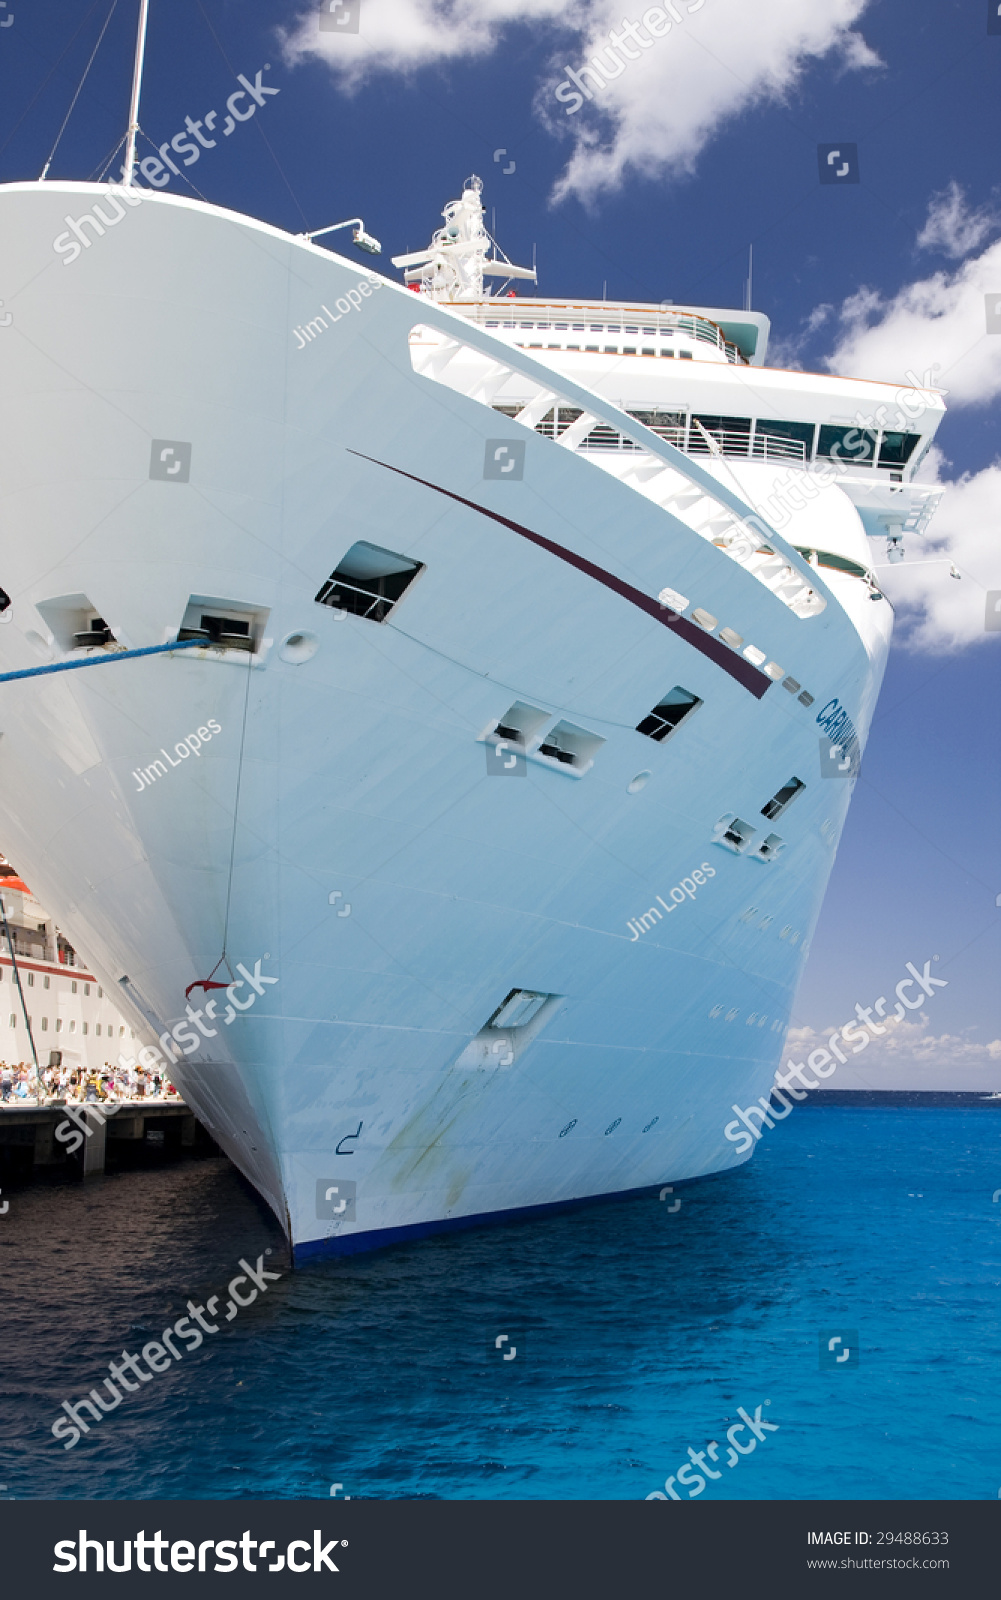 March 23 : Carnival Inspiration Cruise